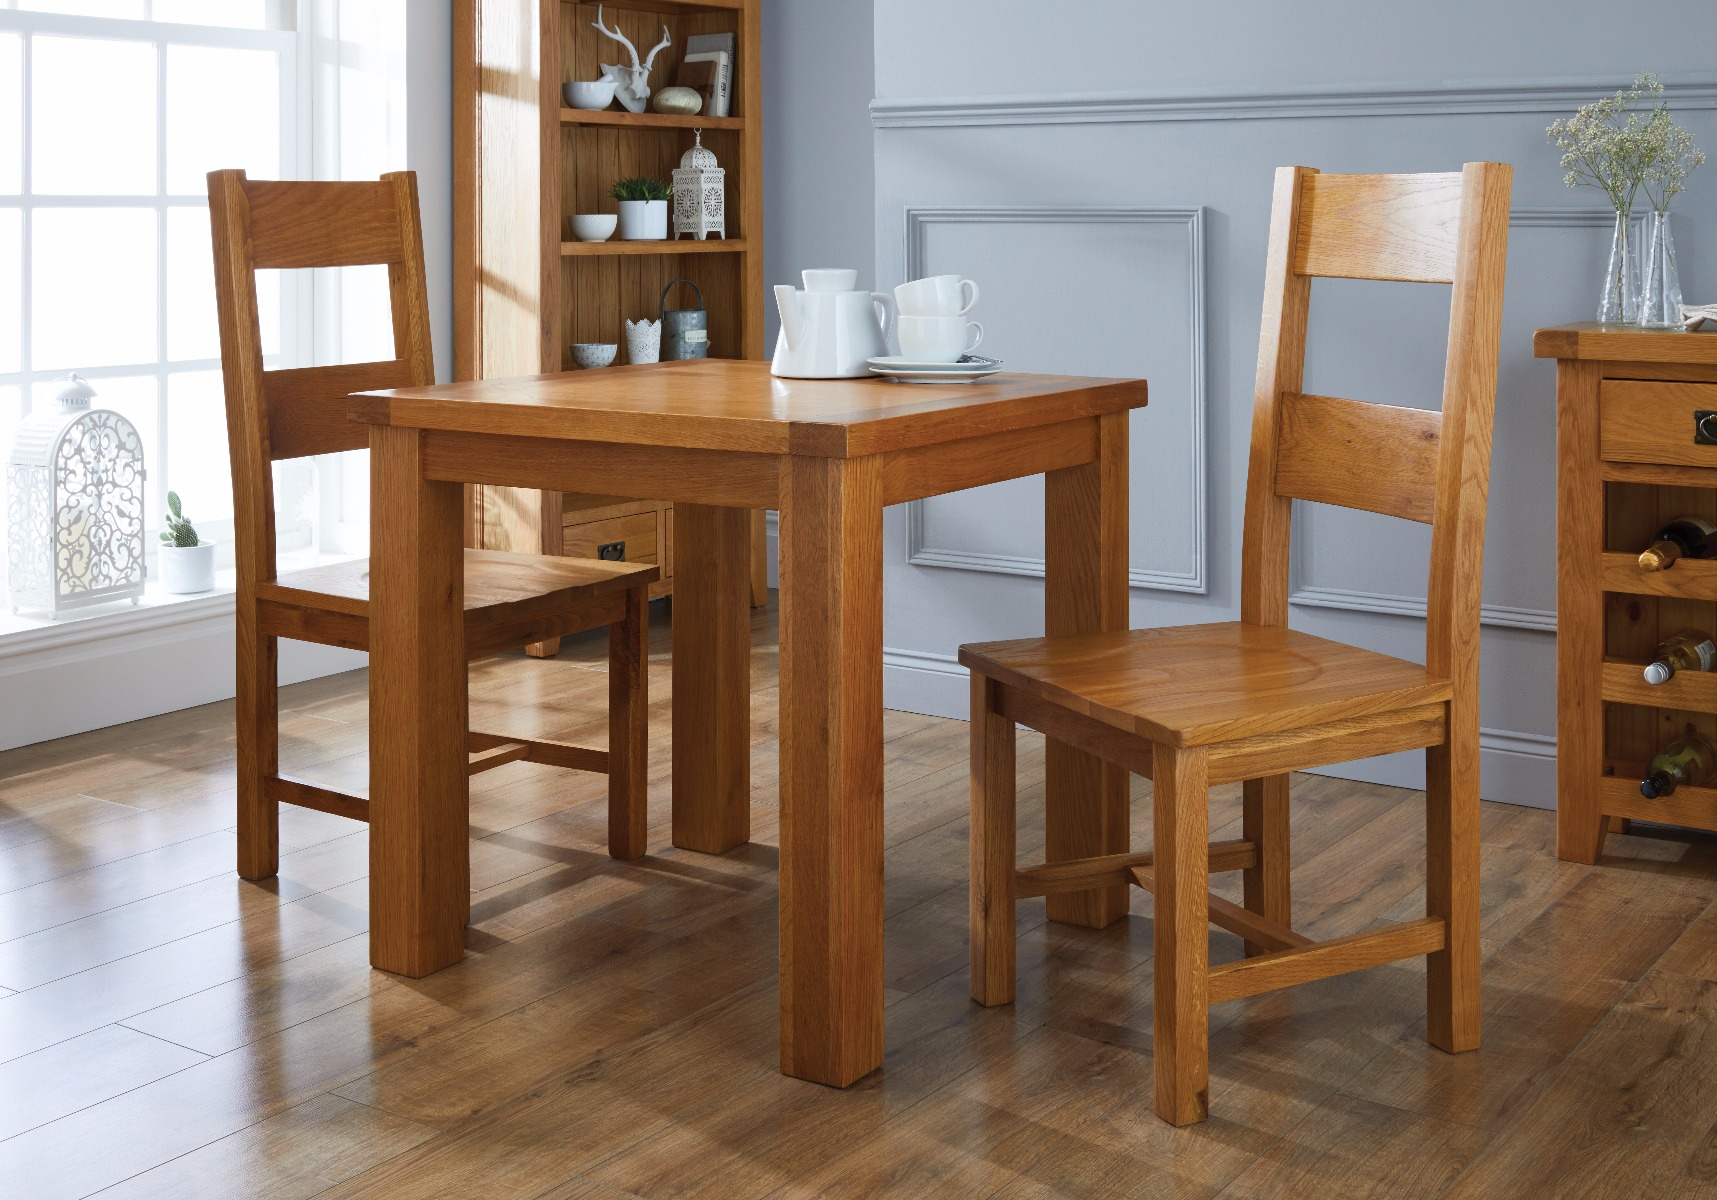 chester country oak ladder back timber seat oak dining chair